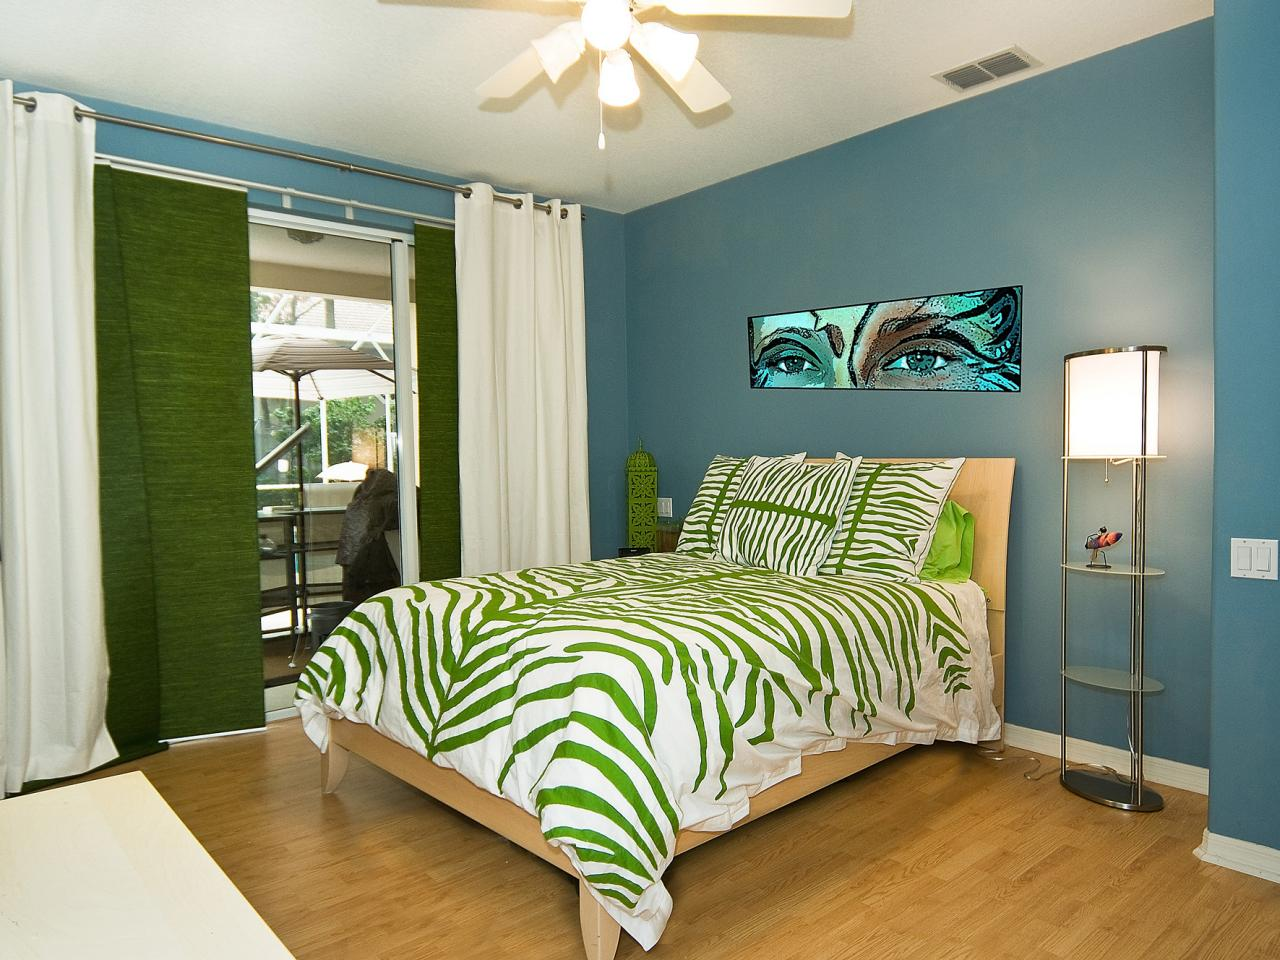 Bedroom Colors For Teenage Girl Sassy And Sophisticated Teen And Tween Bedroom Ideas